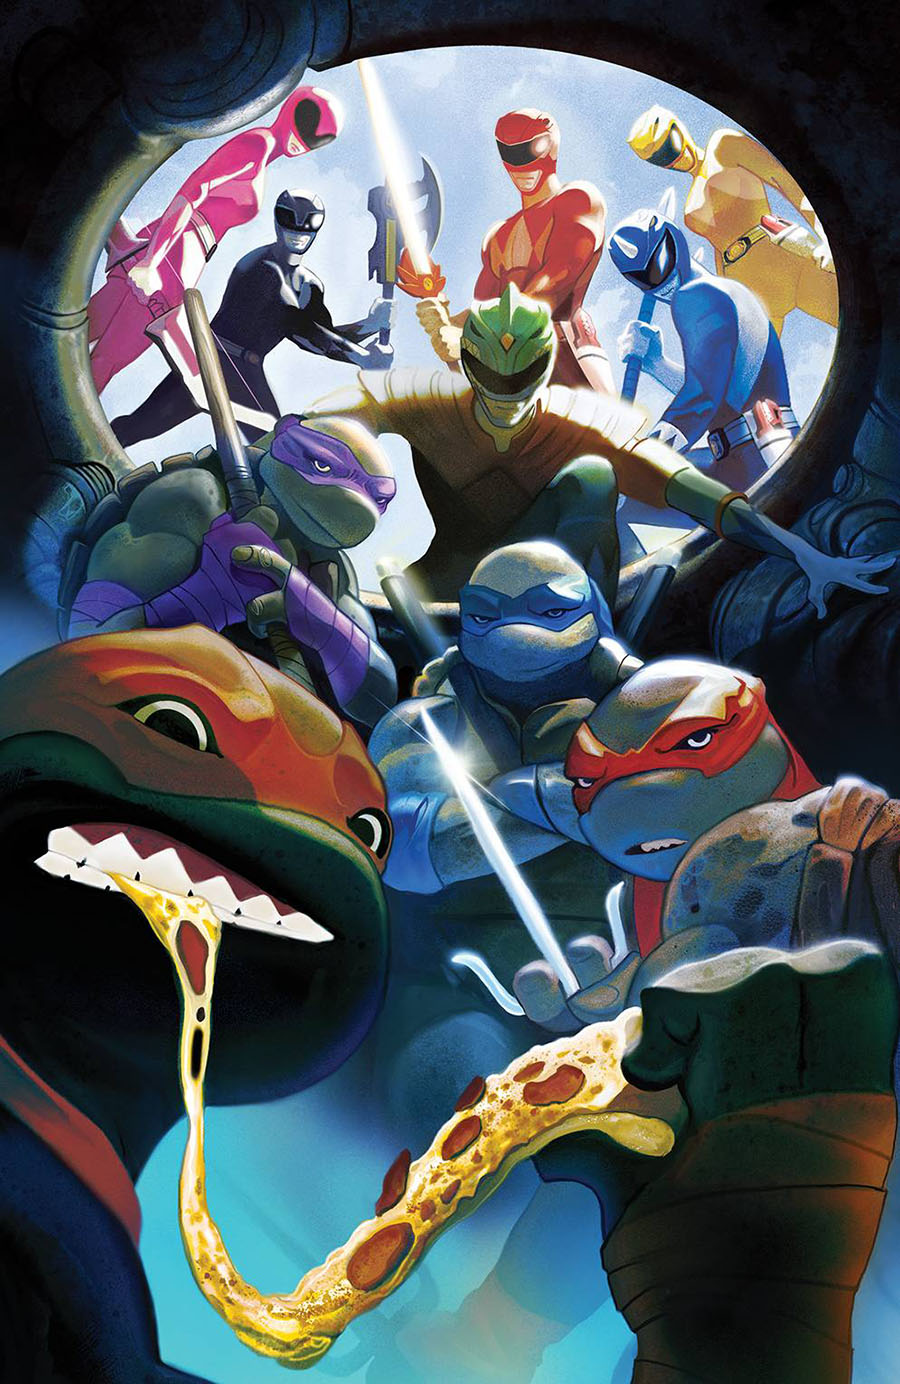 Mighty Morphin Power Rangers Teenage Mutant Ninja Turtles #5 Cover F Variant Mike Del Mundo Cover